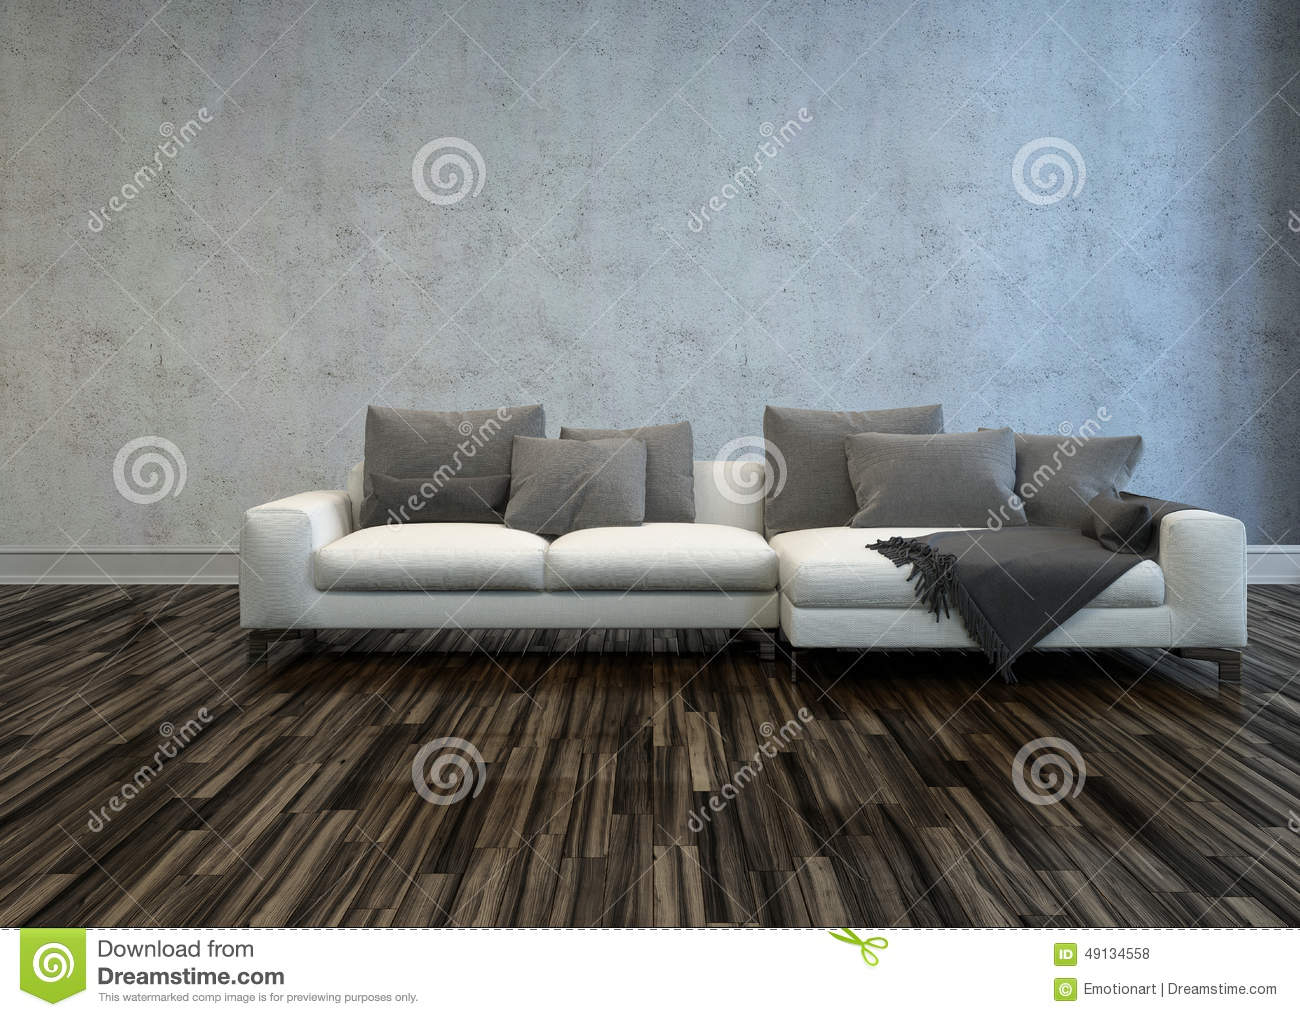 Stupendous White Sofa With Grey Cushions In Bare Room Stock Gamerscity Chair Design For Home Gamerscityorg